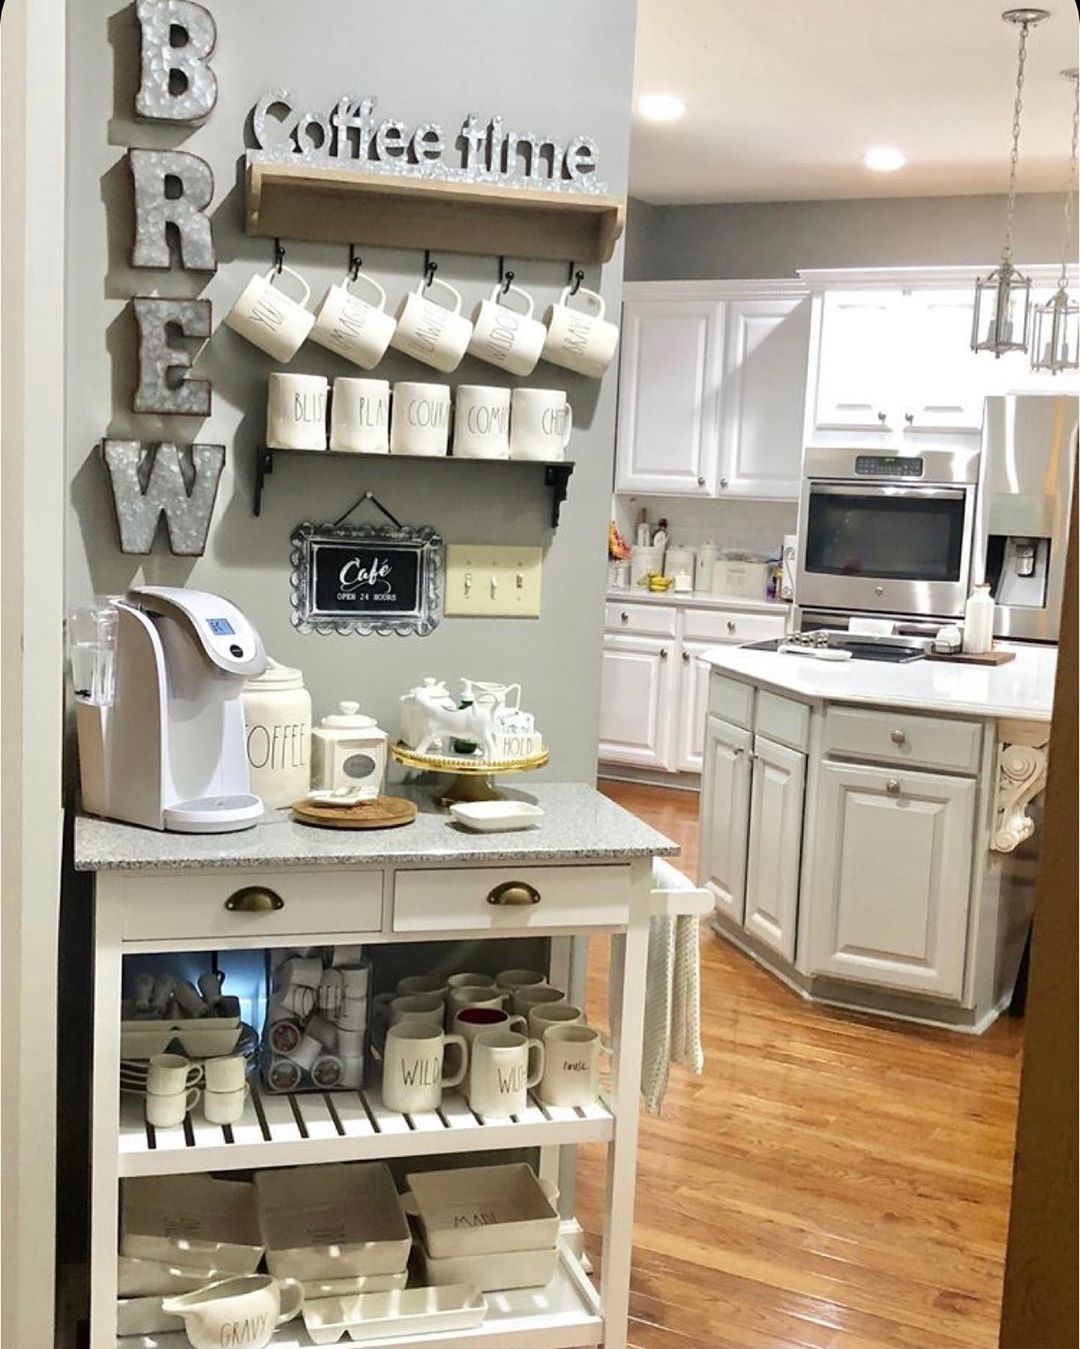 Cecile S Instagram Post Thank You Loveandmarriageblog For Featuring My Coffee Station On Pinterest This Kitchen Remodel Home Coffee Stations Kitchen Design